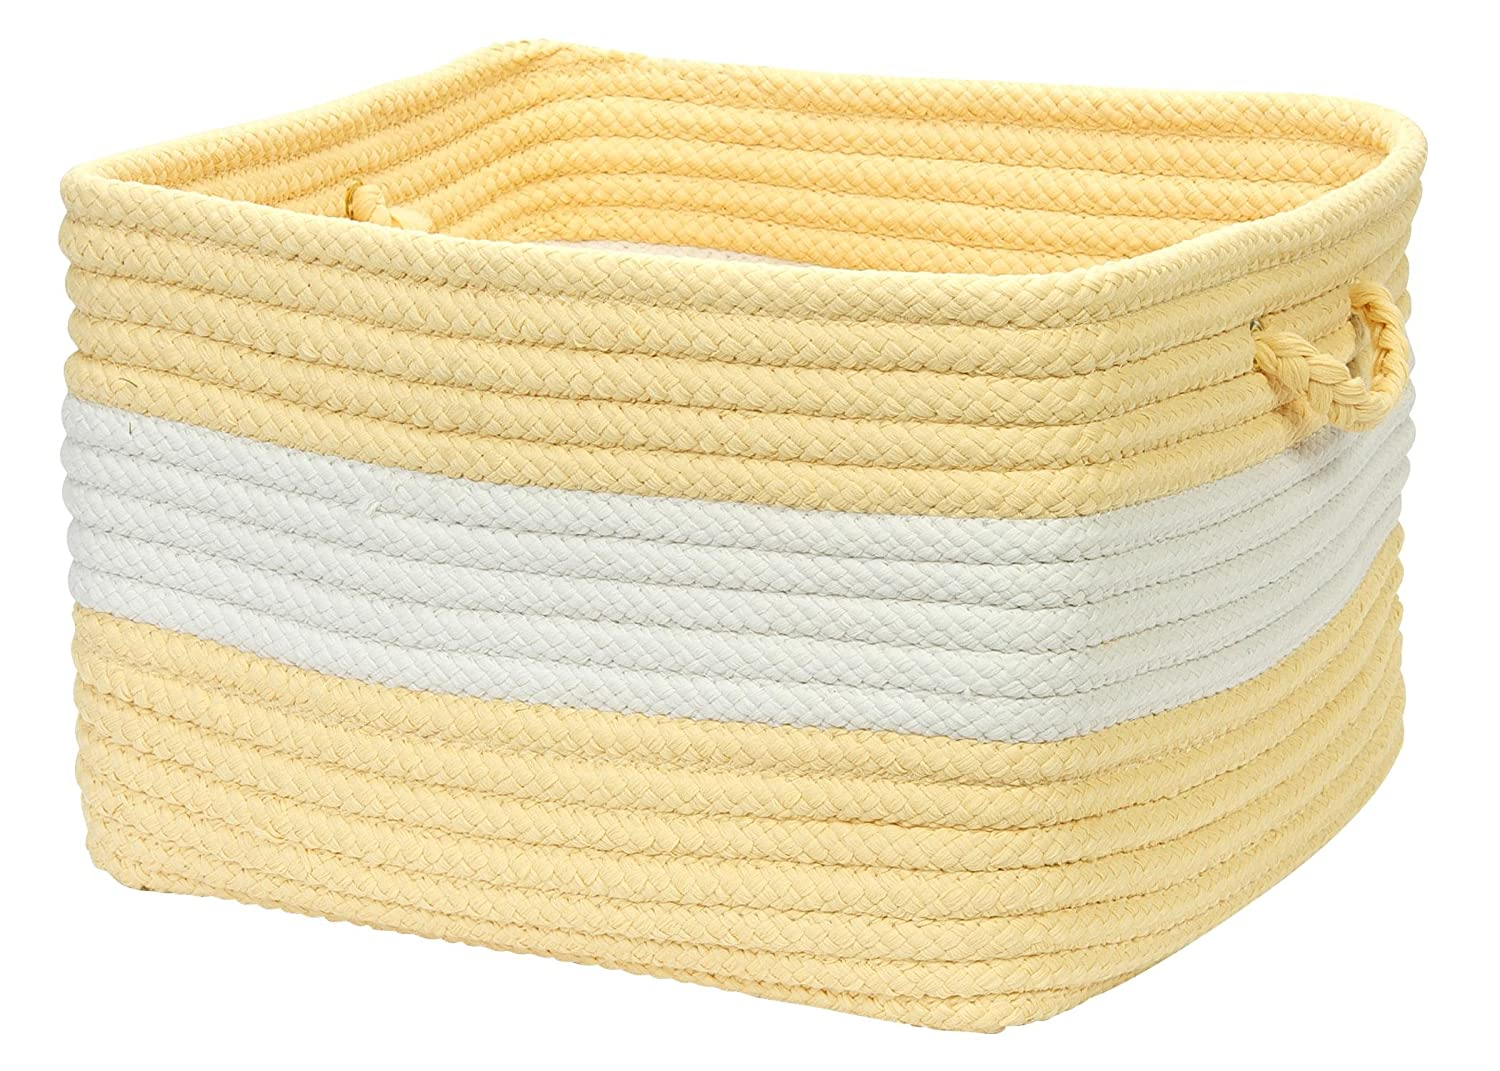 Colonial Mills Rope Walk Utility Basket Yellow CB90A018X018S 18 by 12-Inch